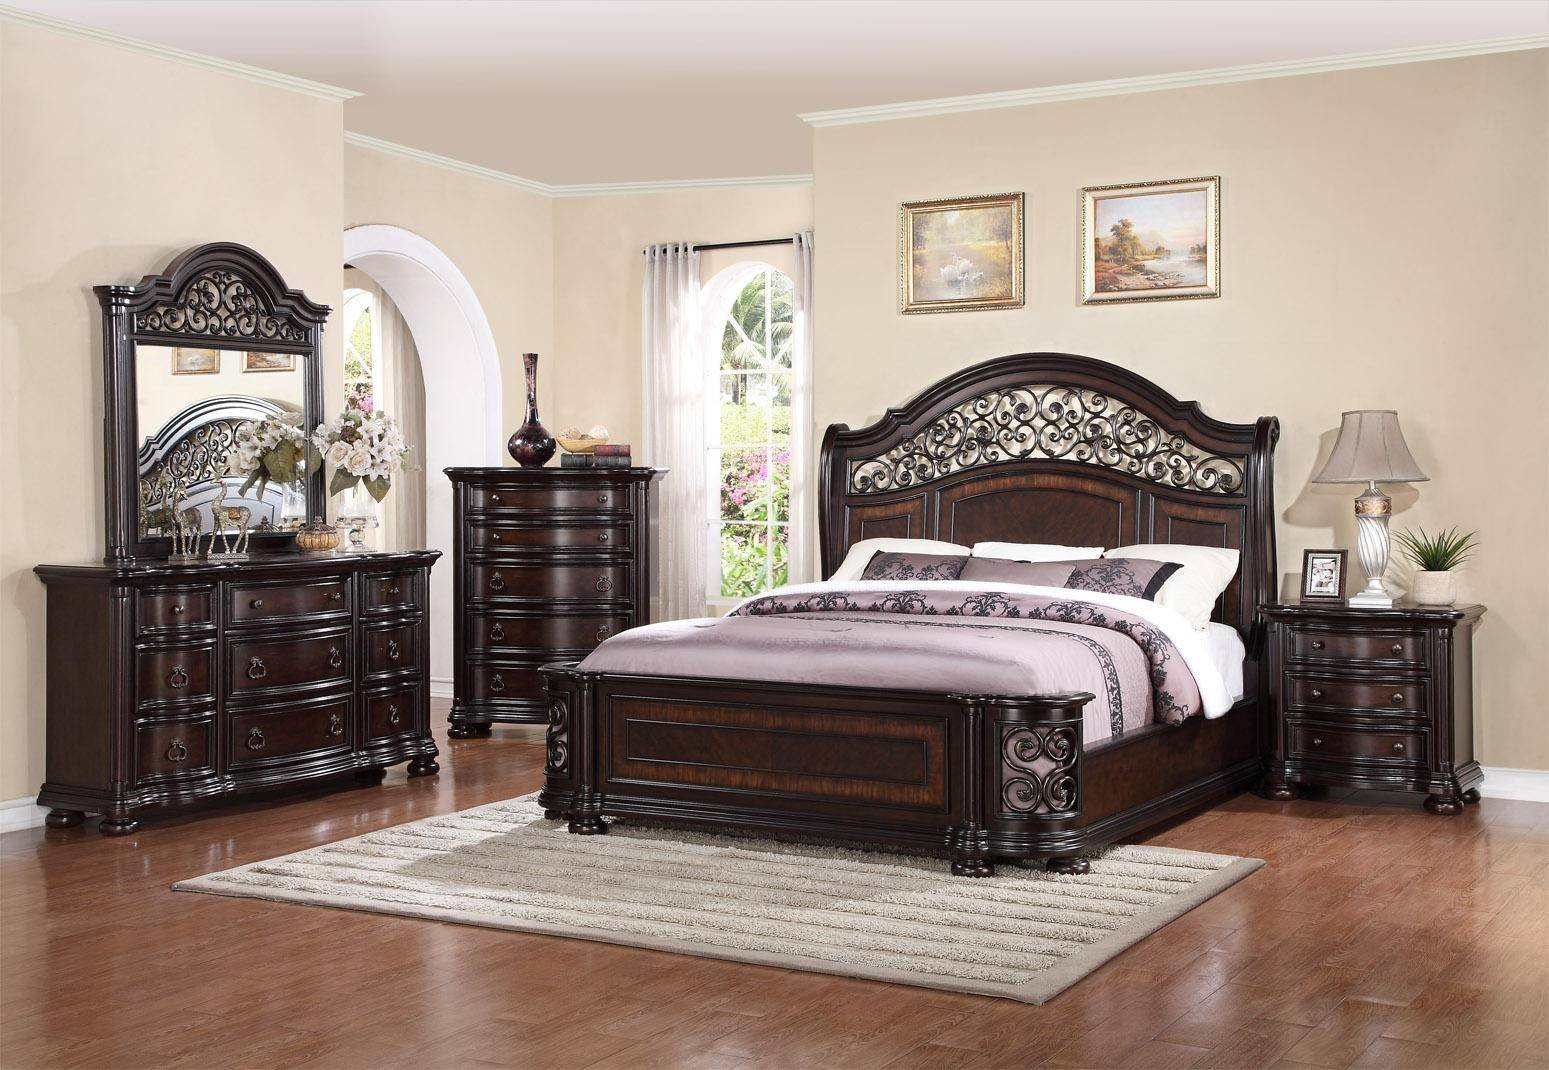 Best Deals On Bedroom Set Fresh Mcferran B366 Allison Espresso Finish solid Hardwood